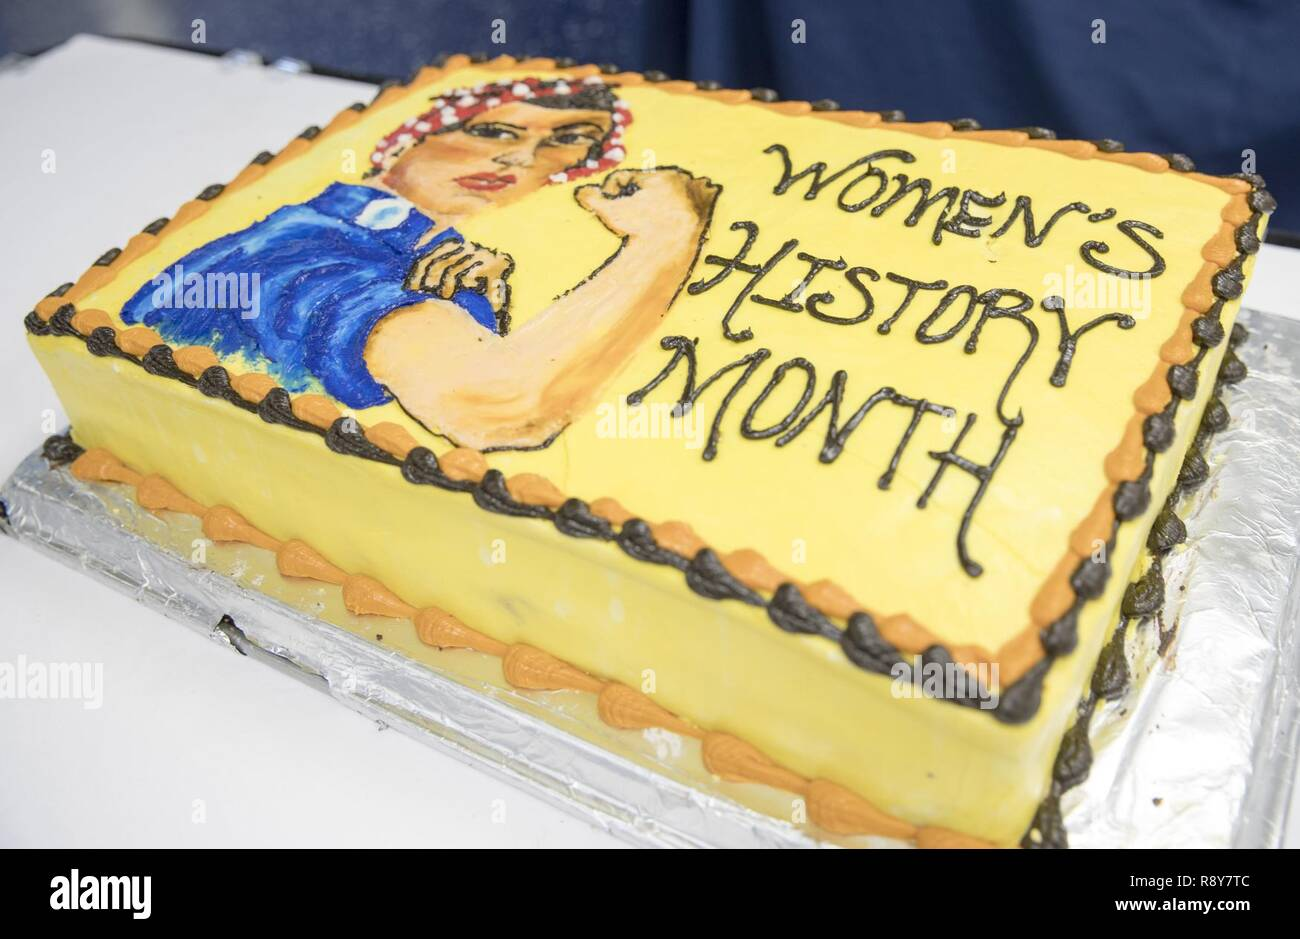 "NEWPORT NEWS, Va. (March 3, 2017) A special ""Rosie the Riveter"" cake was created by the bakery shop aboard USS Abraham Lincoln (CVN 72) for the command's Women's History Month observance on the ship's mess deck. The event honored trailblazing Navy women such as Rear Adm. Grace Hopper, Capt. Sarah Joyner, and Chief Yeoman Loretta Walsh. - Stock Image"